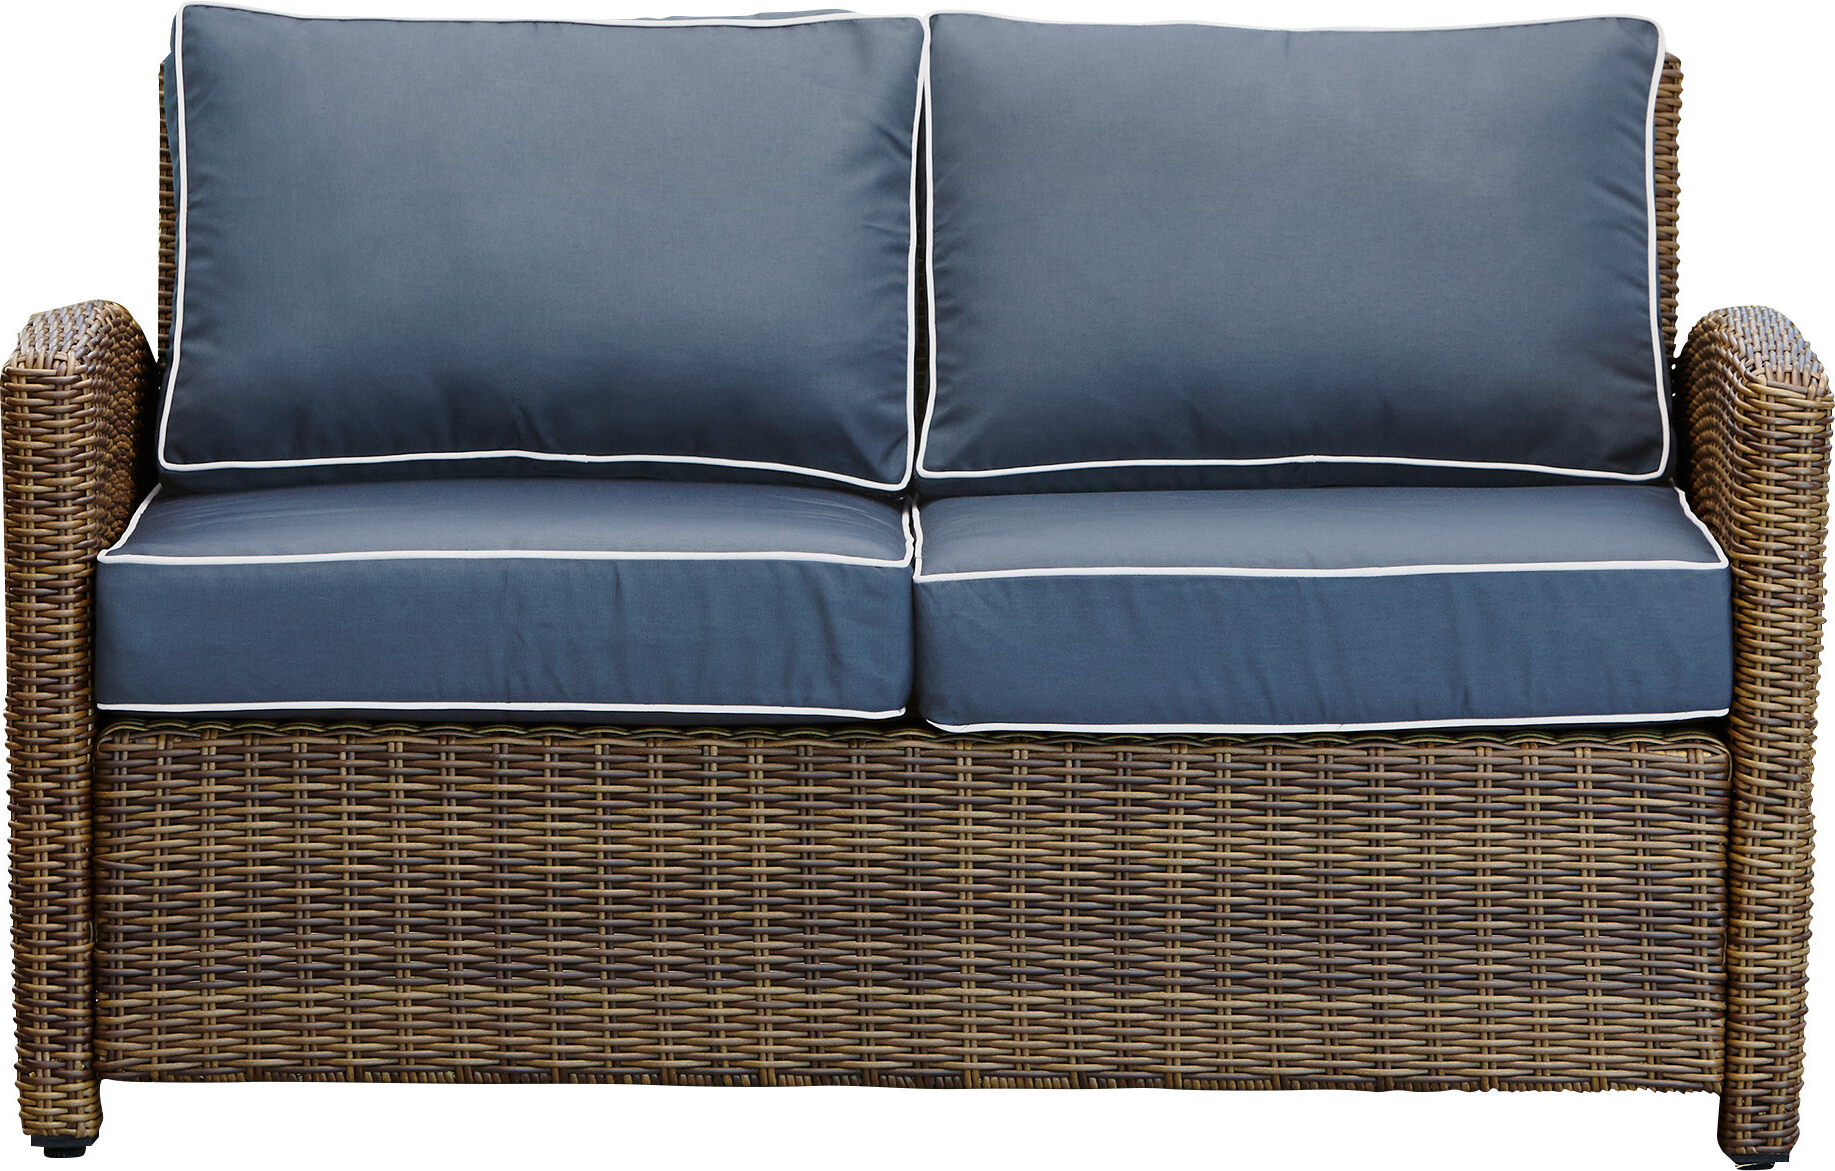 Lawson Wicker Loveseat With Cushions Pertaining To Most Popular Lawson Wicker Loveseats With Cushions (Gallery 2 of 25)